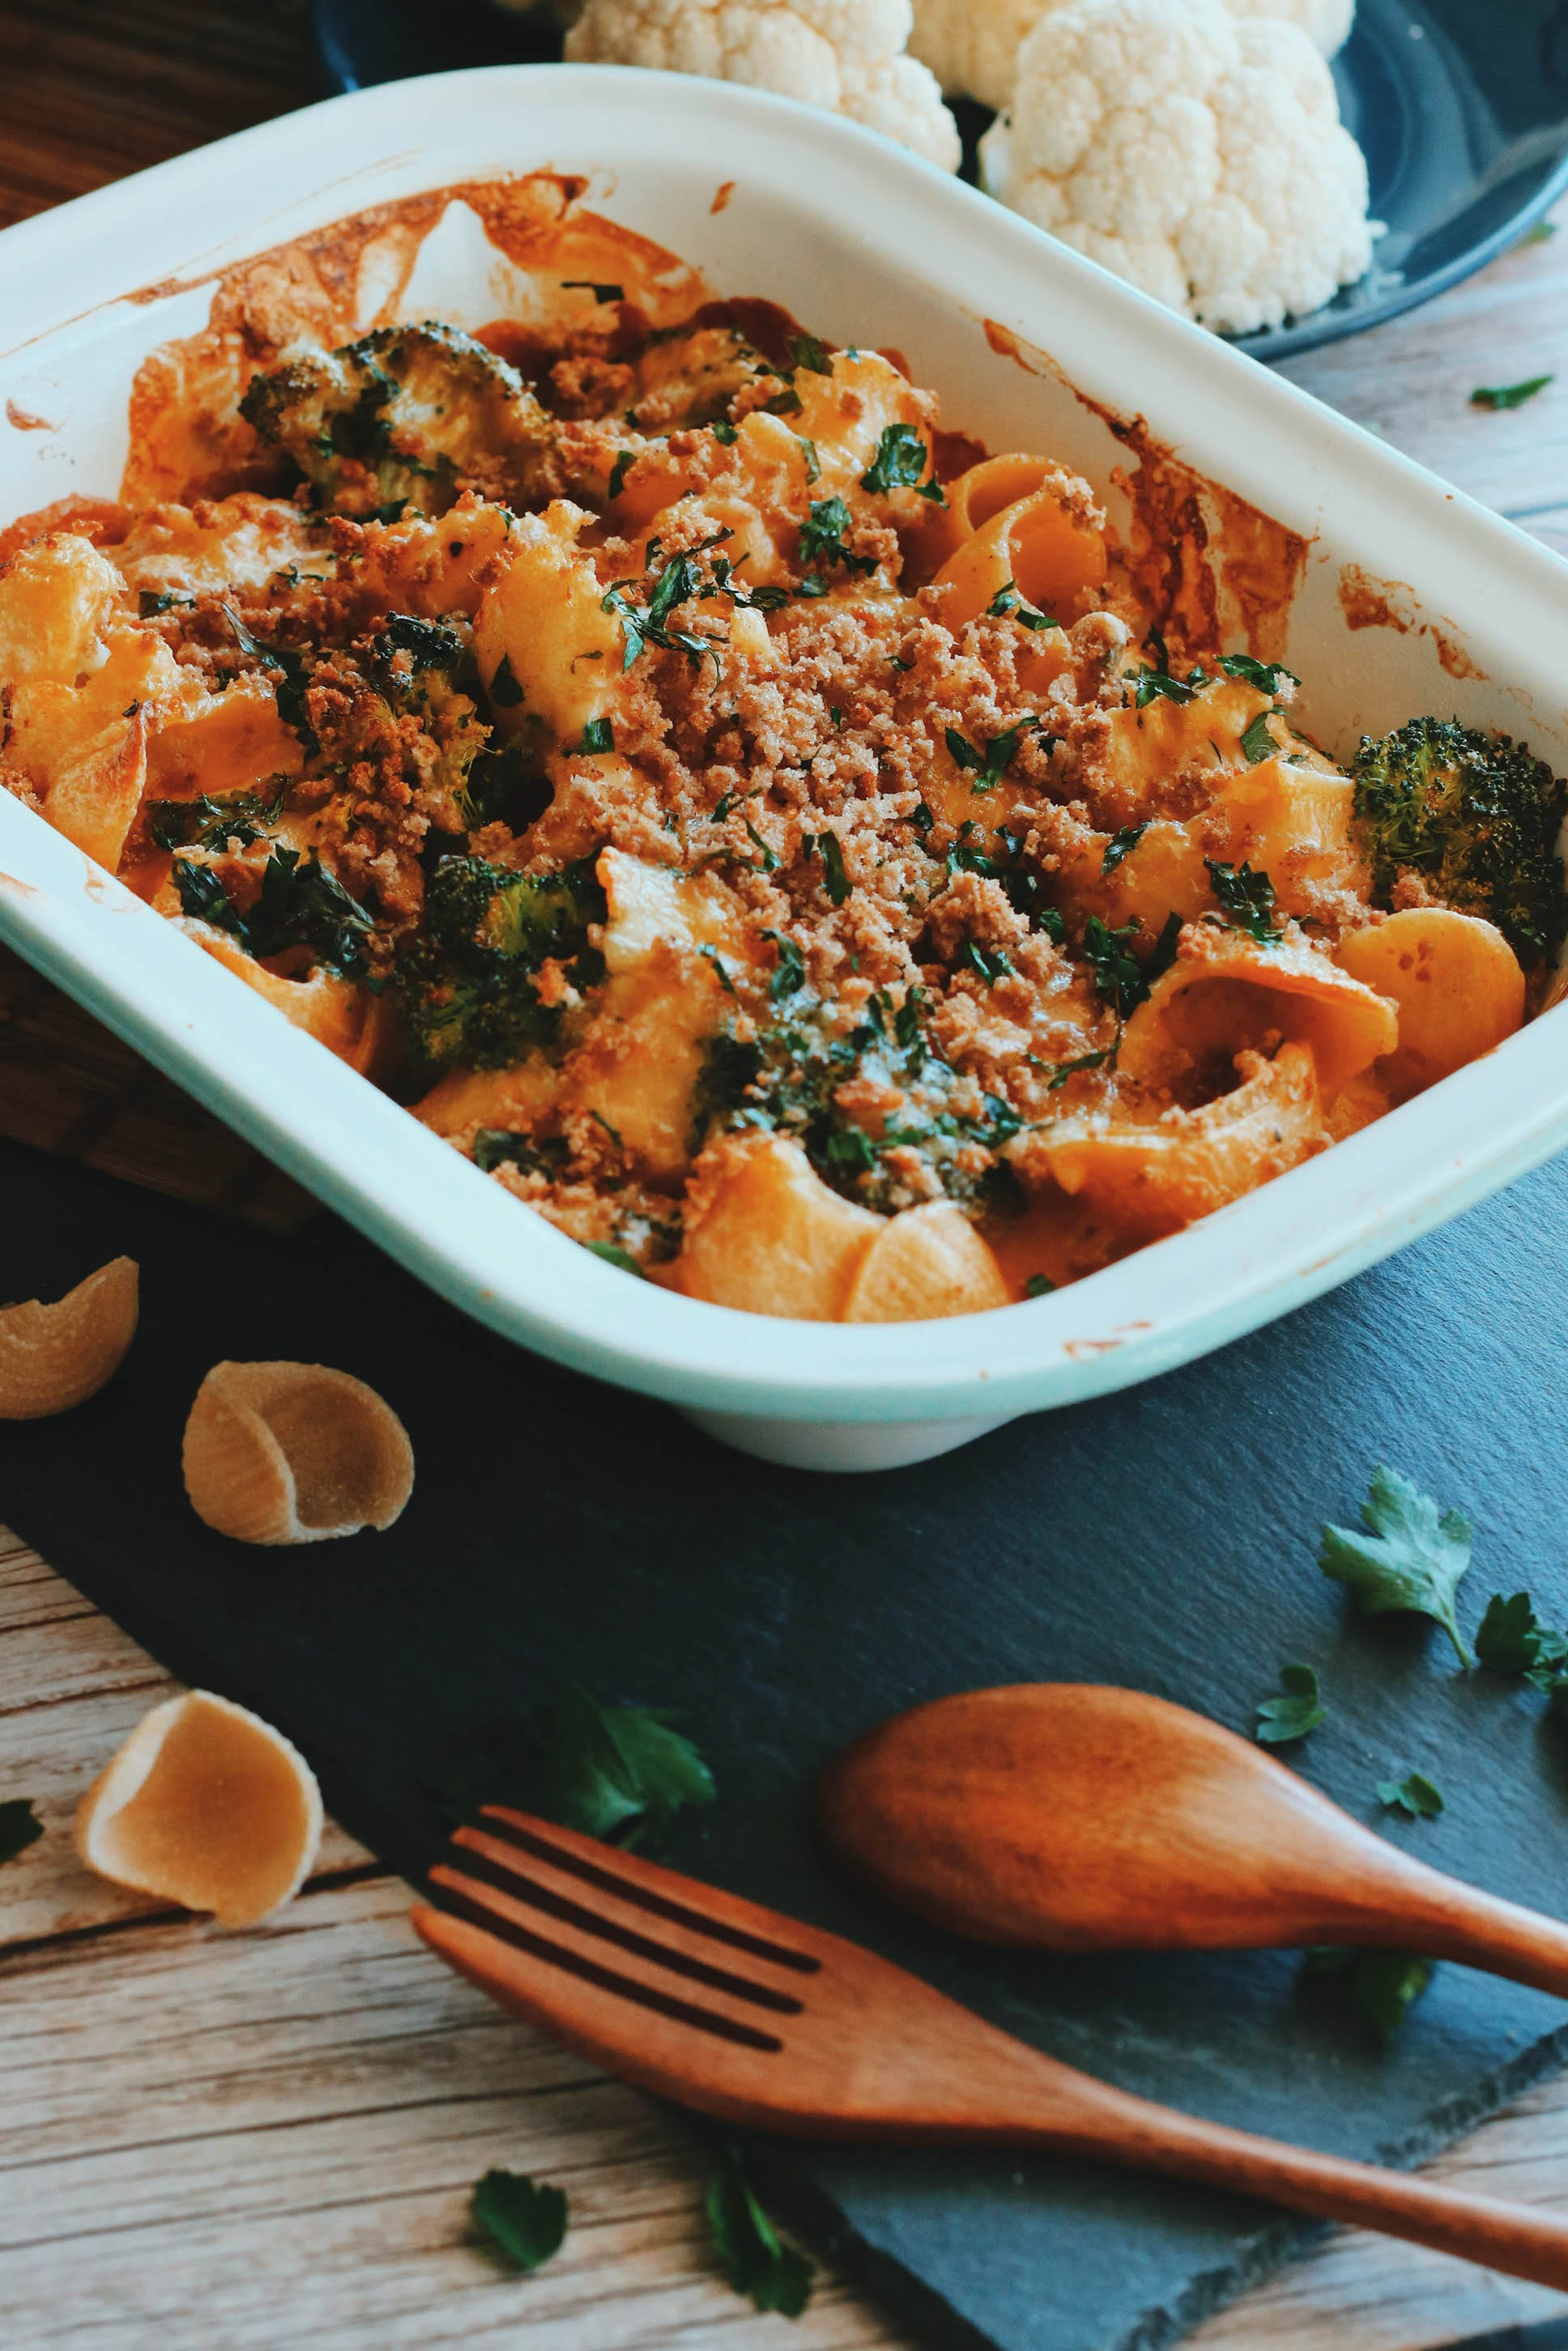 Cauliflower & Broccoli Pasta Bake